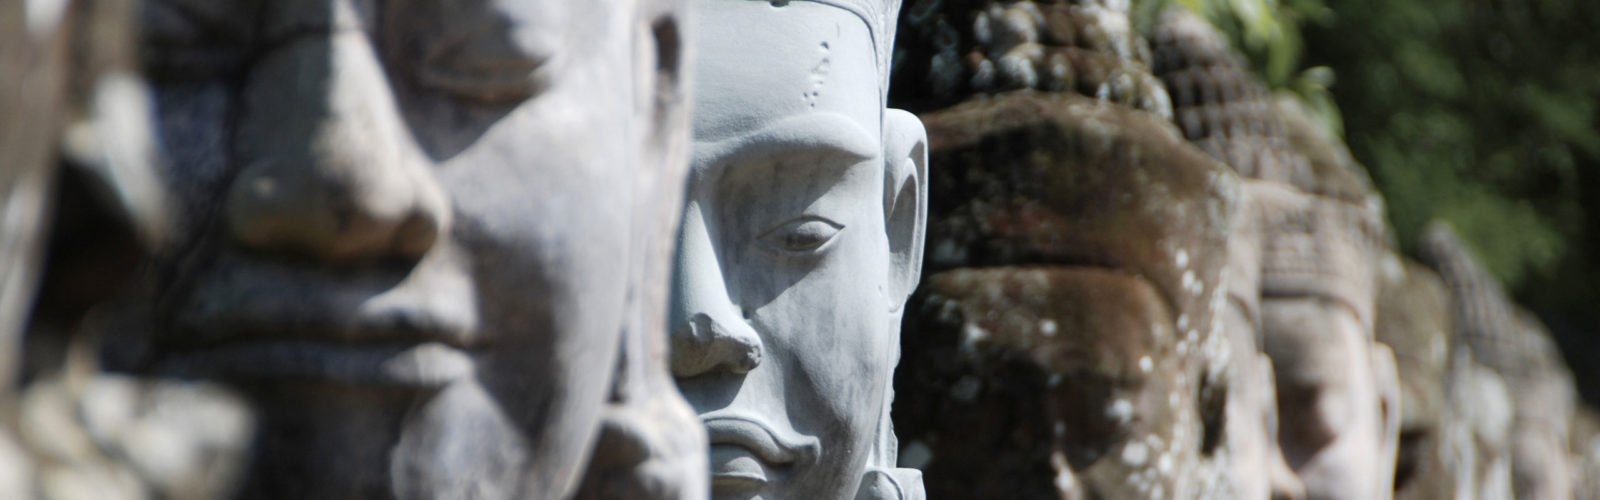 Giant sculpted heads, Angkor, Cambodia